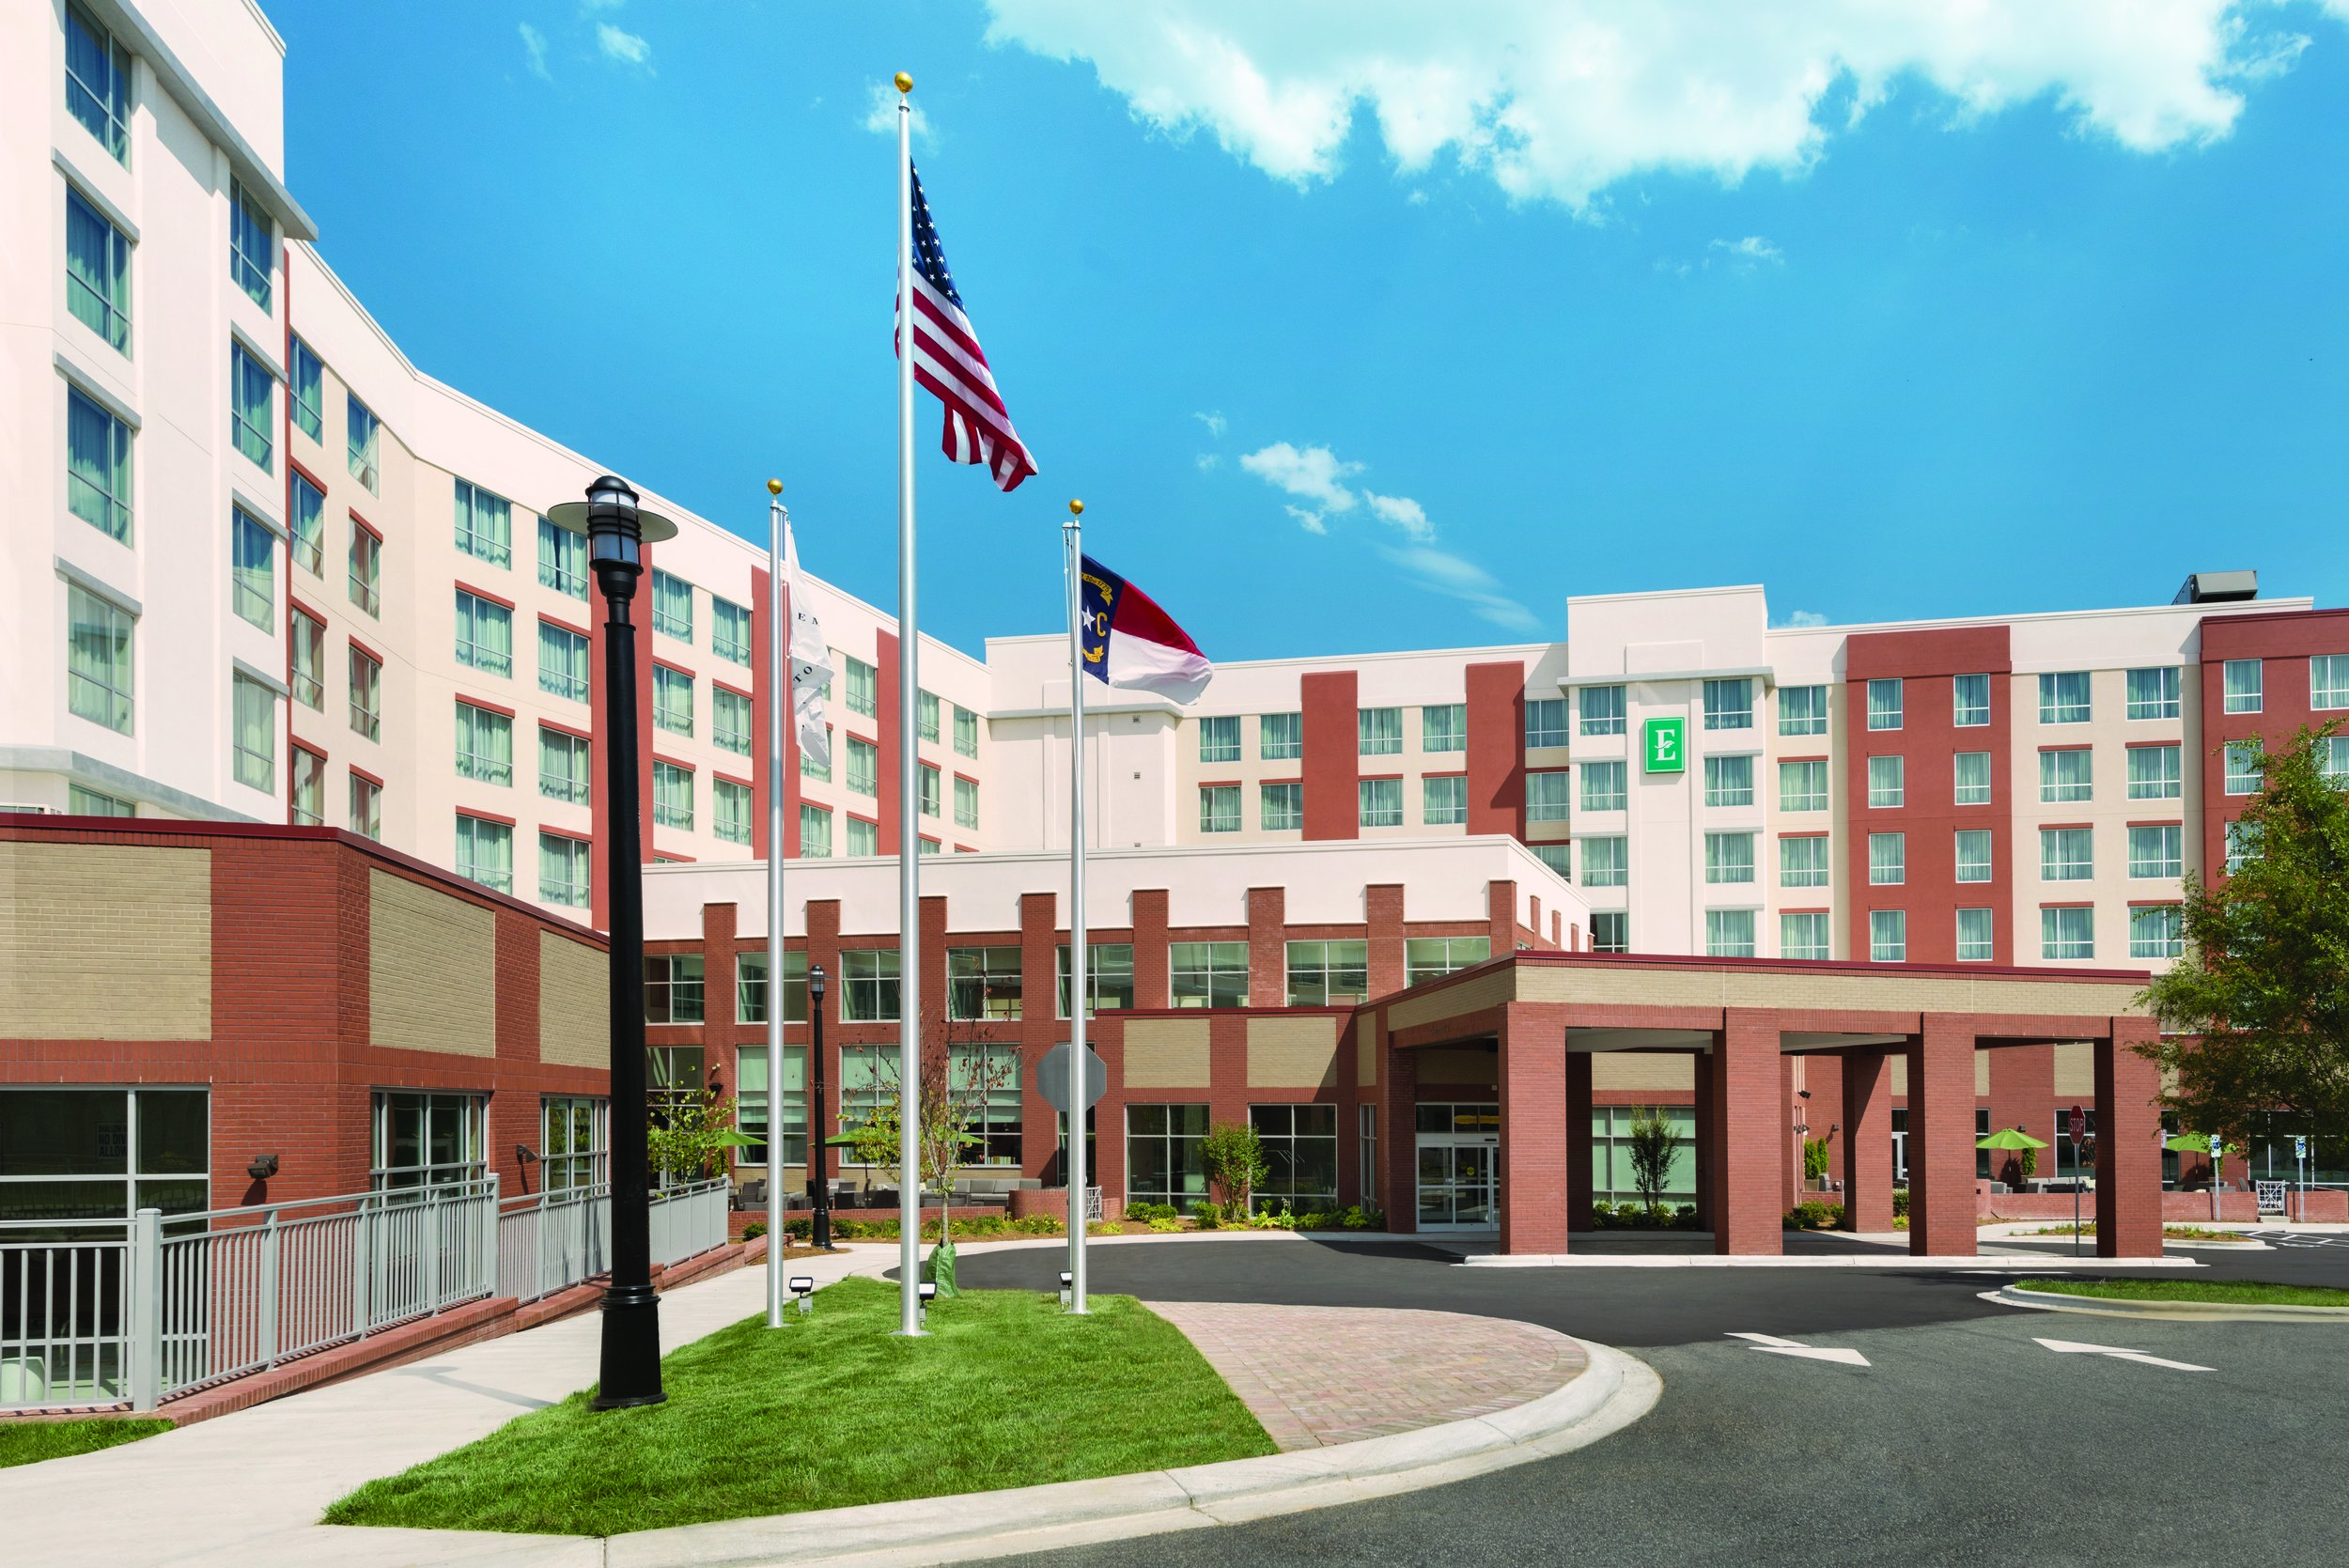 Just of Interstate 485, this polished all-suite hotel is 5 miles from Carowinds seasonal amusement park and 8 miles from the Billy Graham Library.